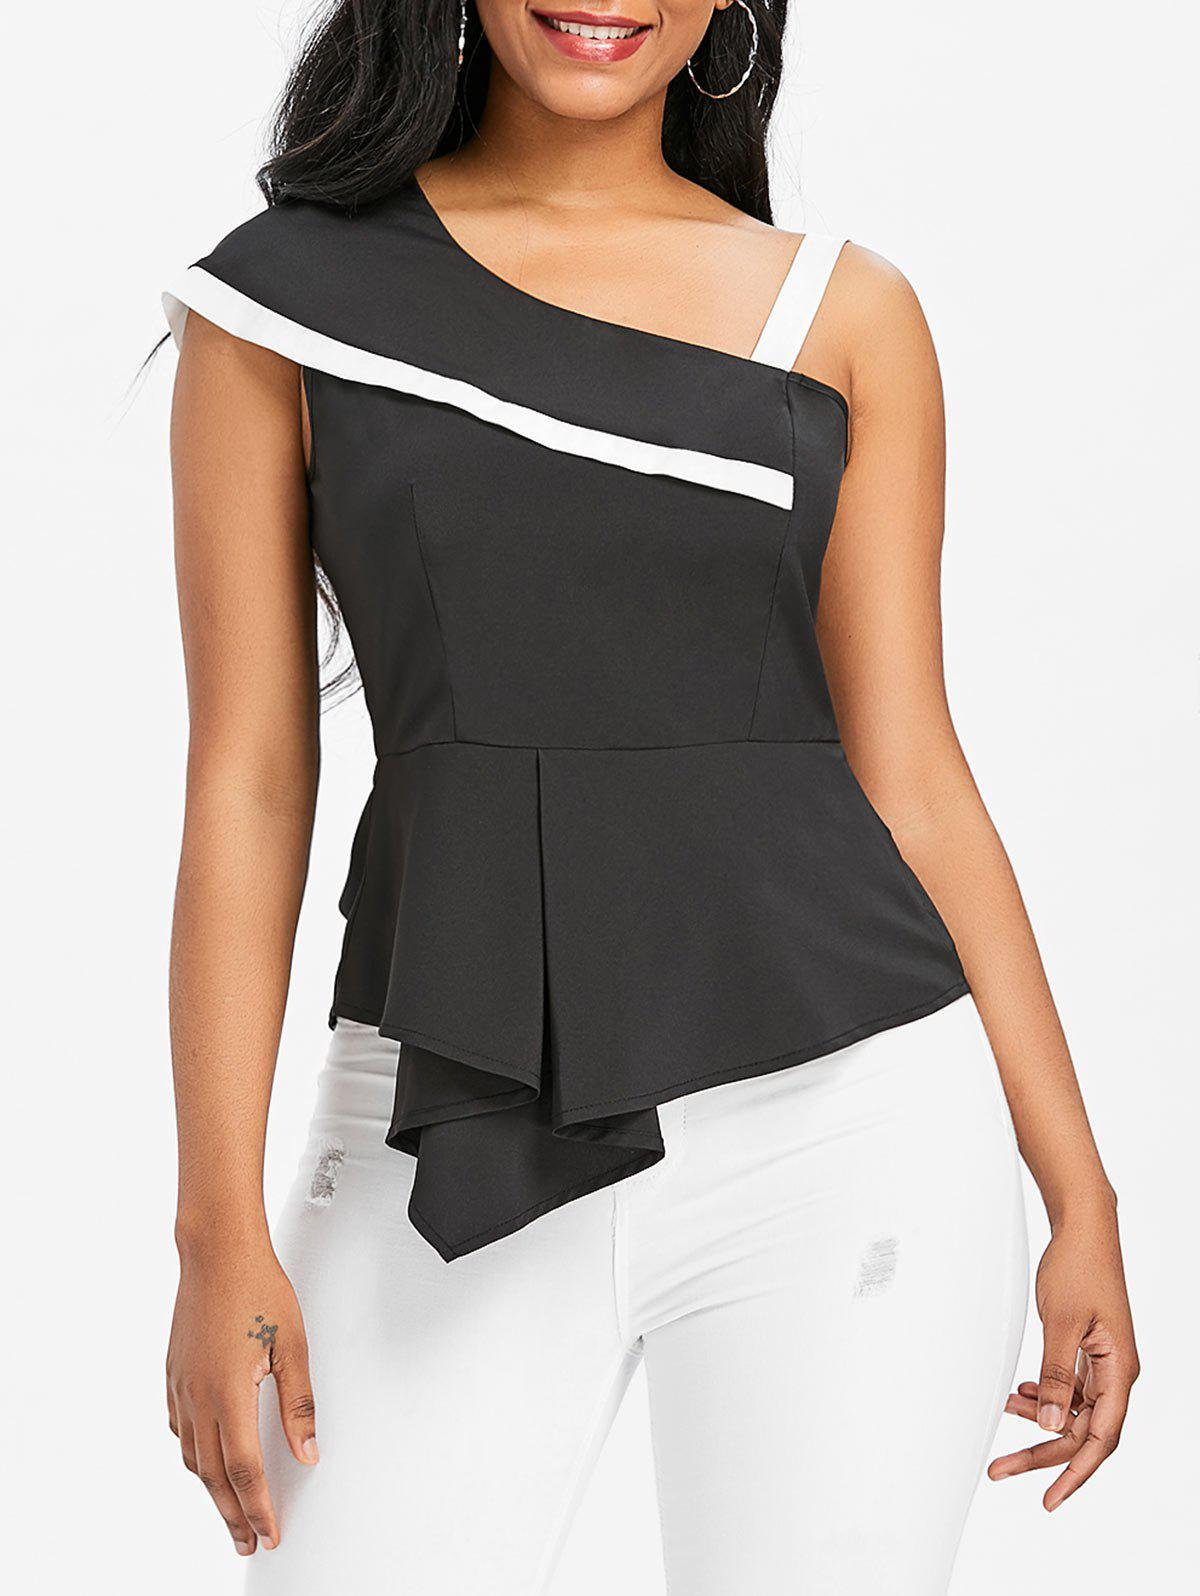 Asymmetrical Flounce Skew Neck Blouse - BLACK M